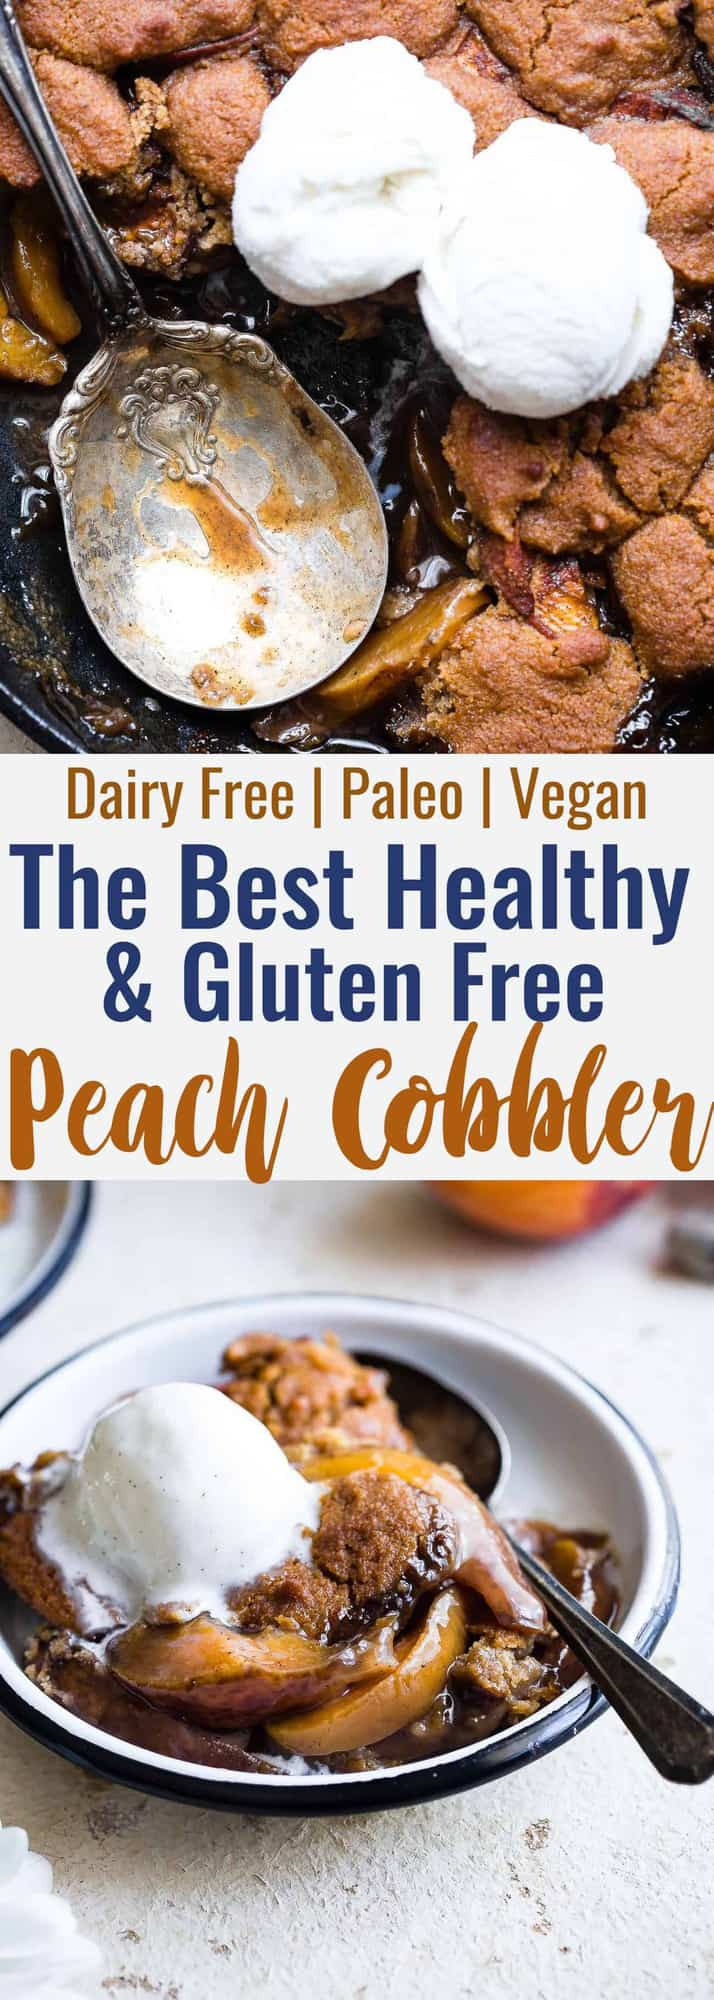 The Best Paleo Peach Cobbler - This EASY recipe is a gluten free remake of the classic recipe that you'll never believe is healthy, dairy free and vegan friendly! The perfect Summer dessert to feed a crowd! | #Foodfaithfitness | #Glutenfree #Vegan #Paleo #Healthy #Dairyfree